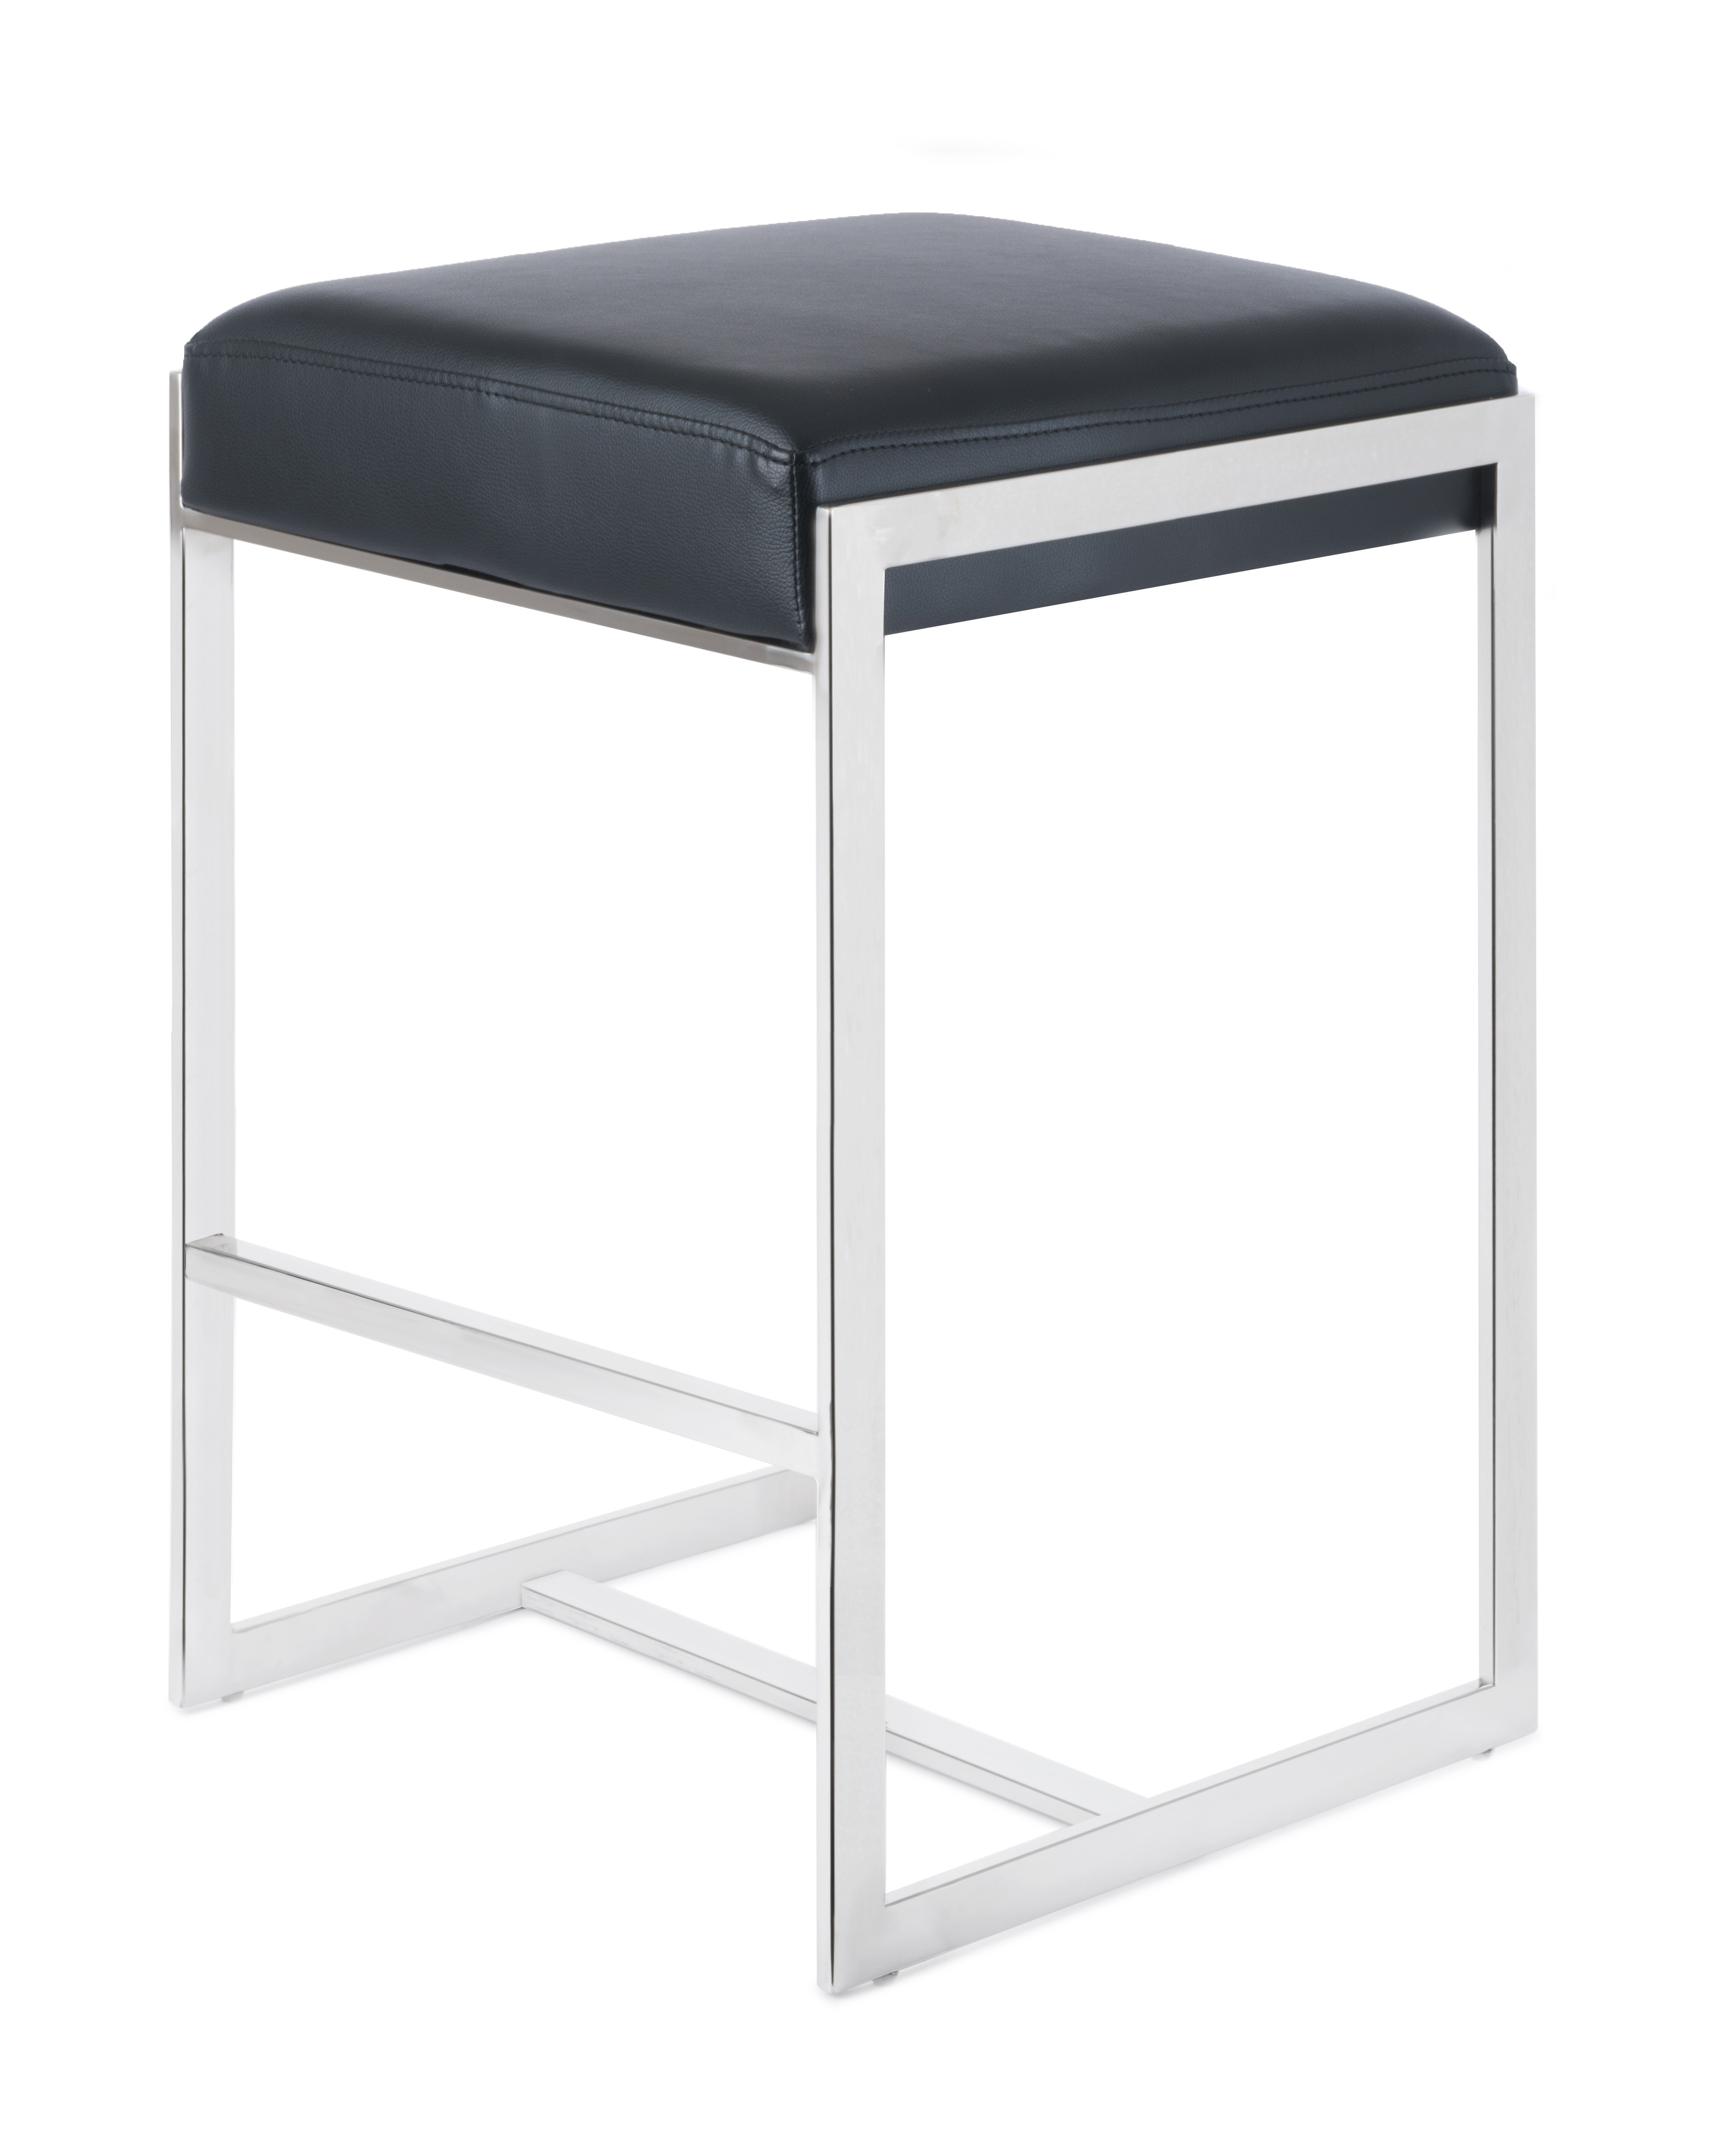 palmer-counter-stool-in-black-with-polished-frame.jpg